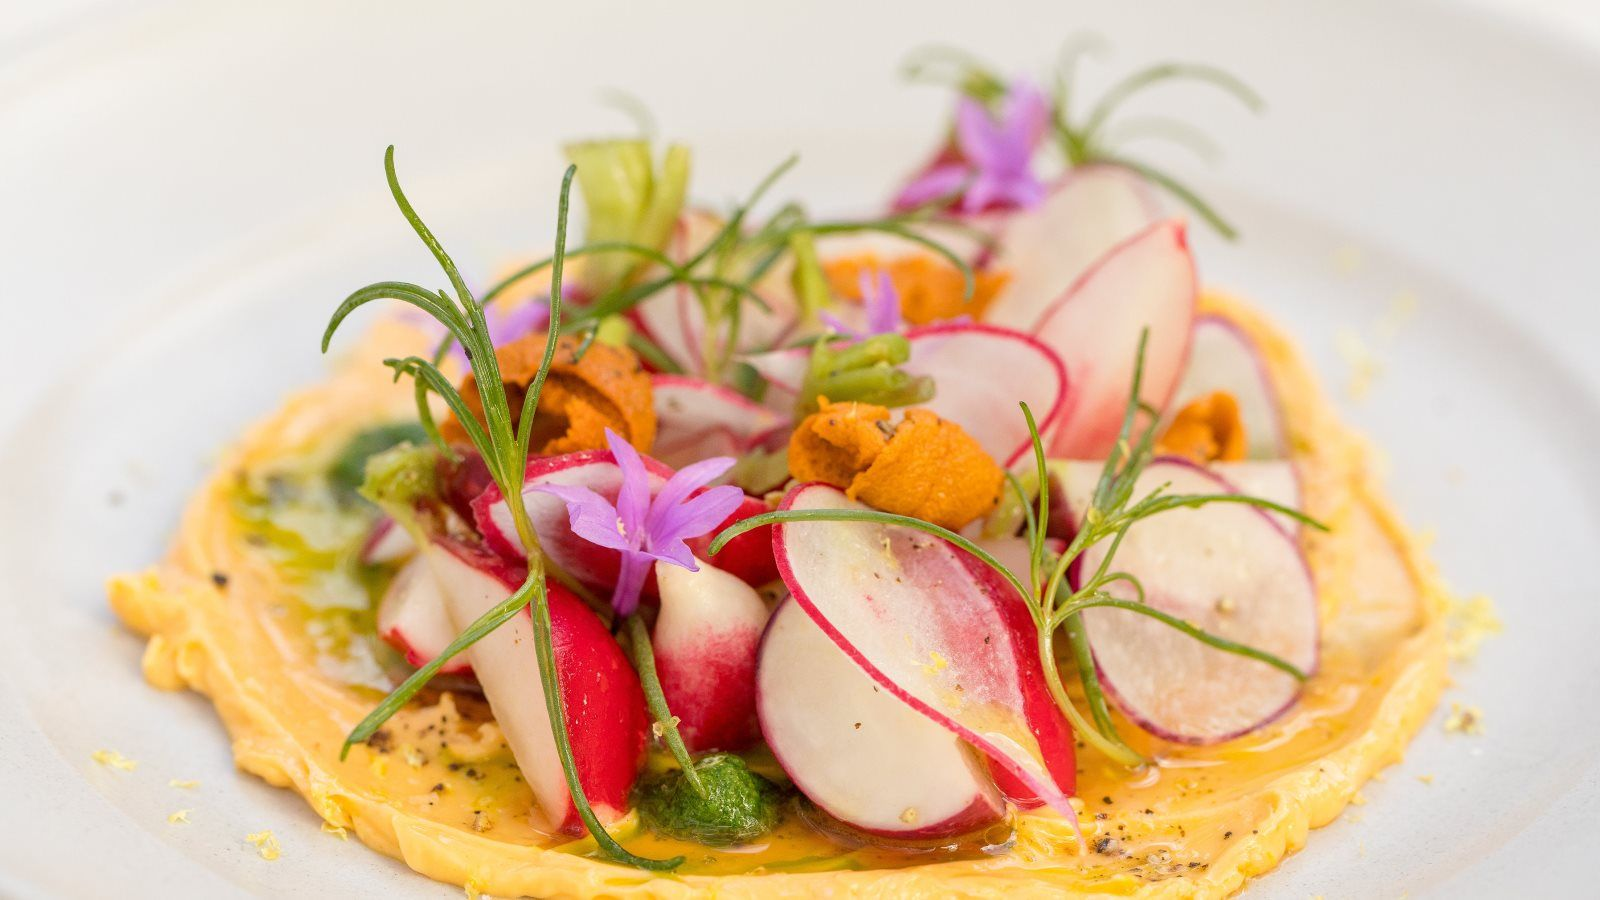 Local Radishes, a dish at Acacia House at Las Alcobas - Explore Media Coverage on Our Press Page